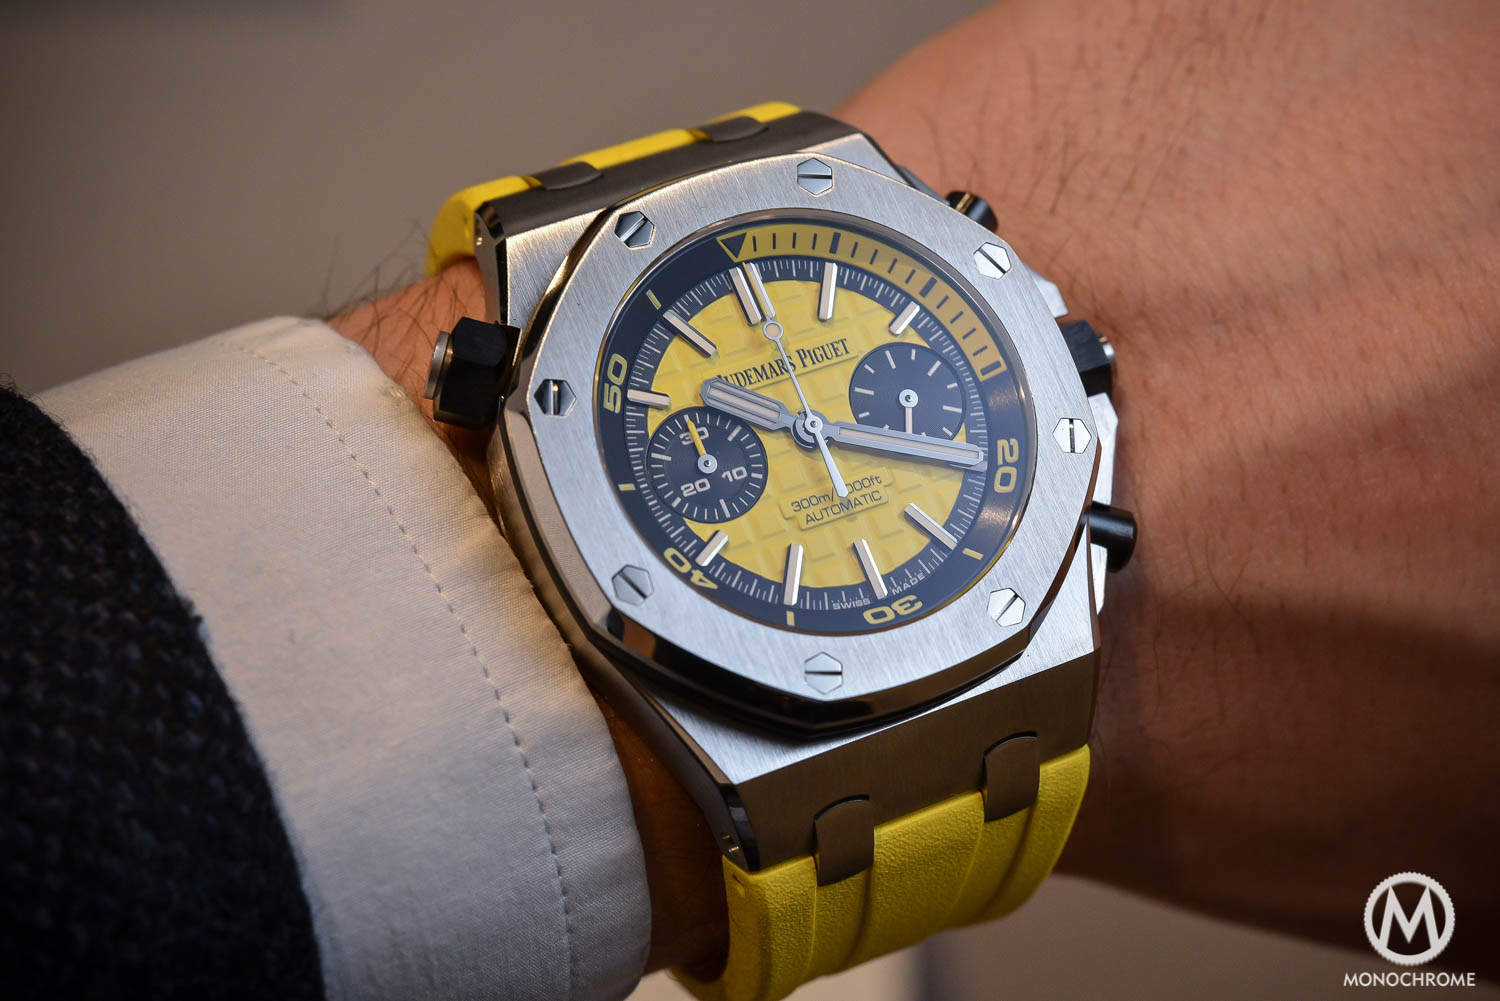 Spotted – Stanislas Wawrinka wearing the new Audemars Piguet Royal Oak Offshore Diver Chronograph at French Open 2016